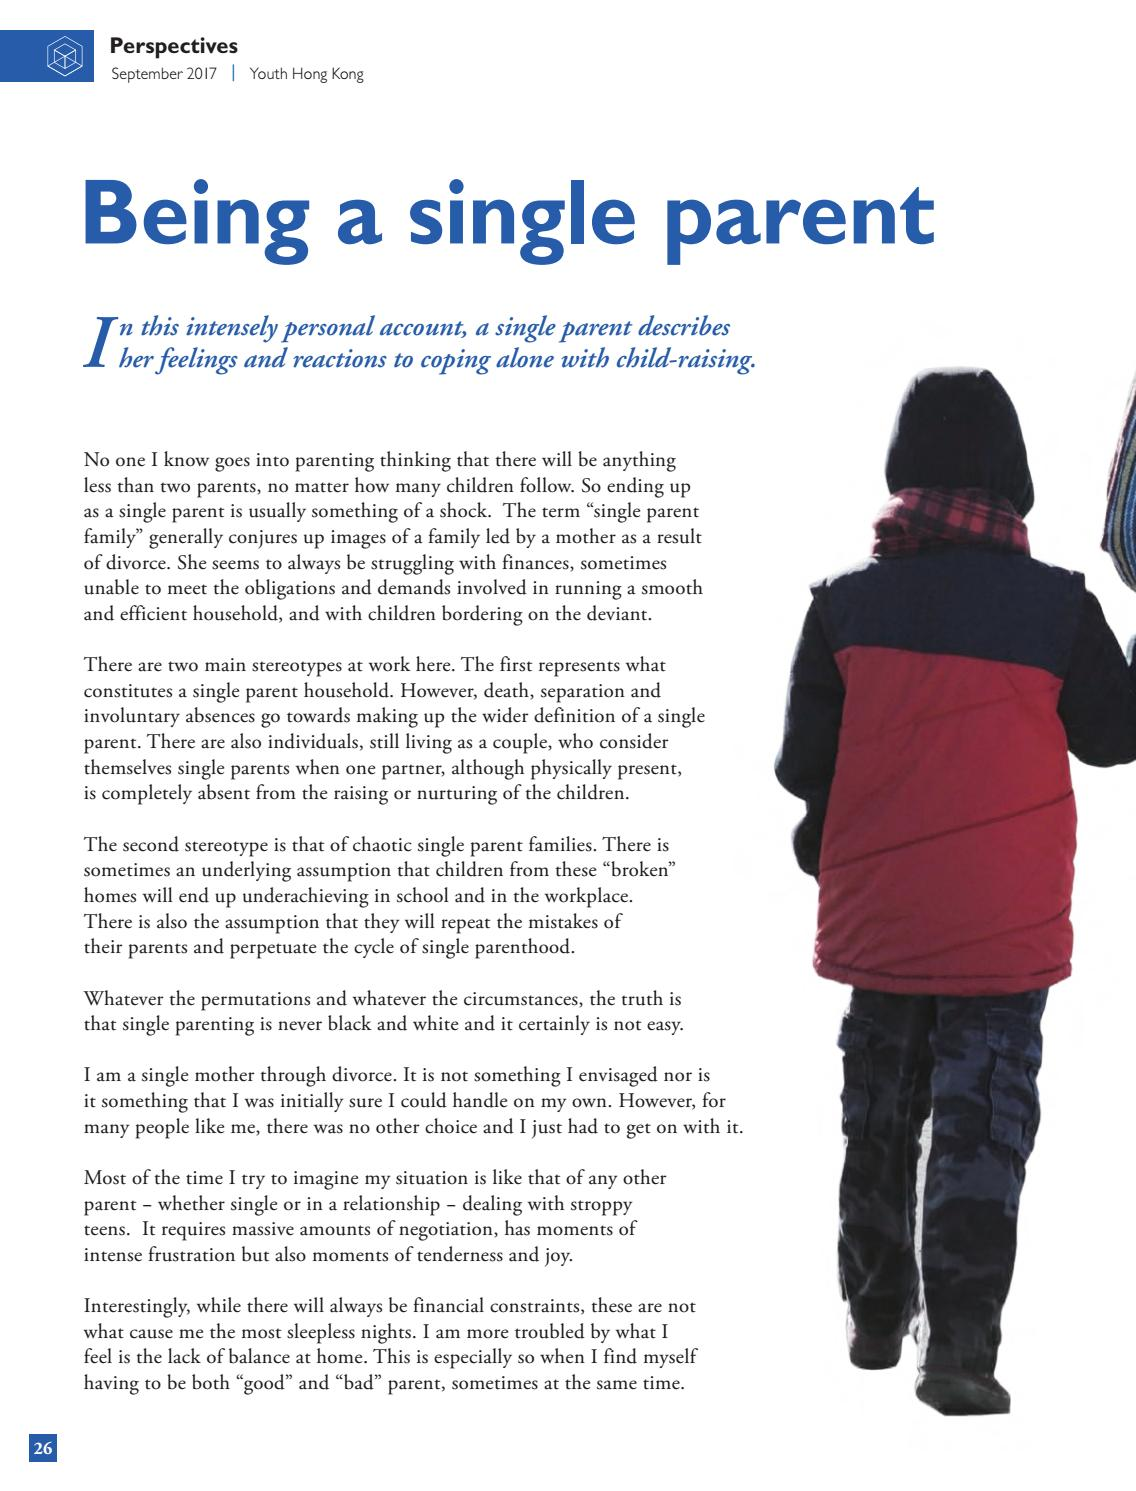 Yhk 9 3 parenting today by Youth Hong Kong - issuu